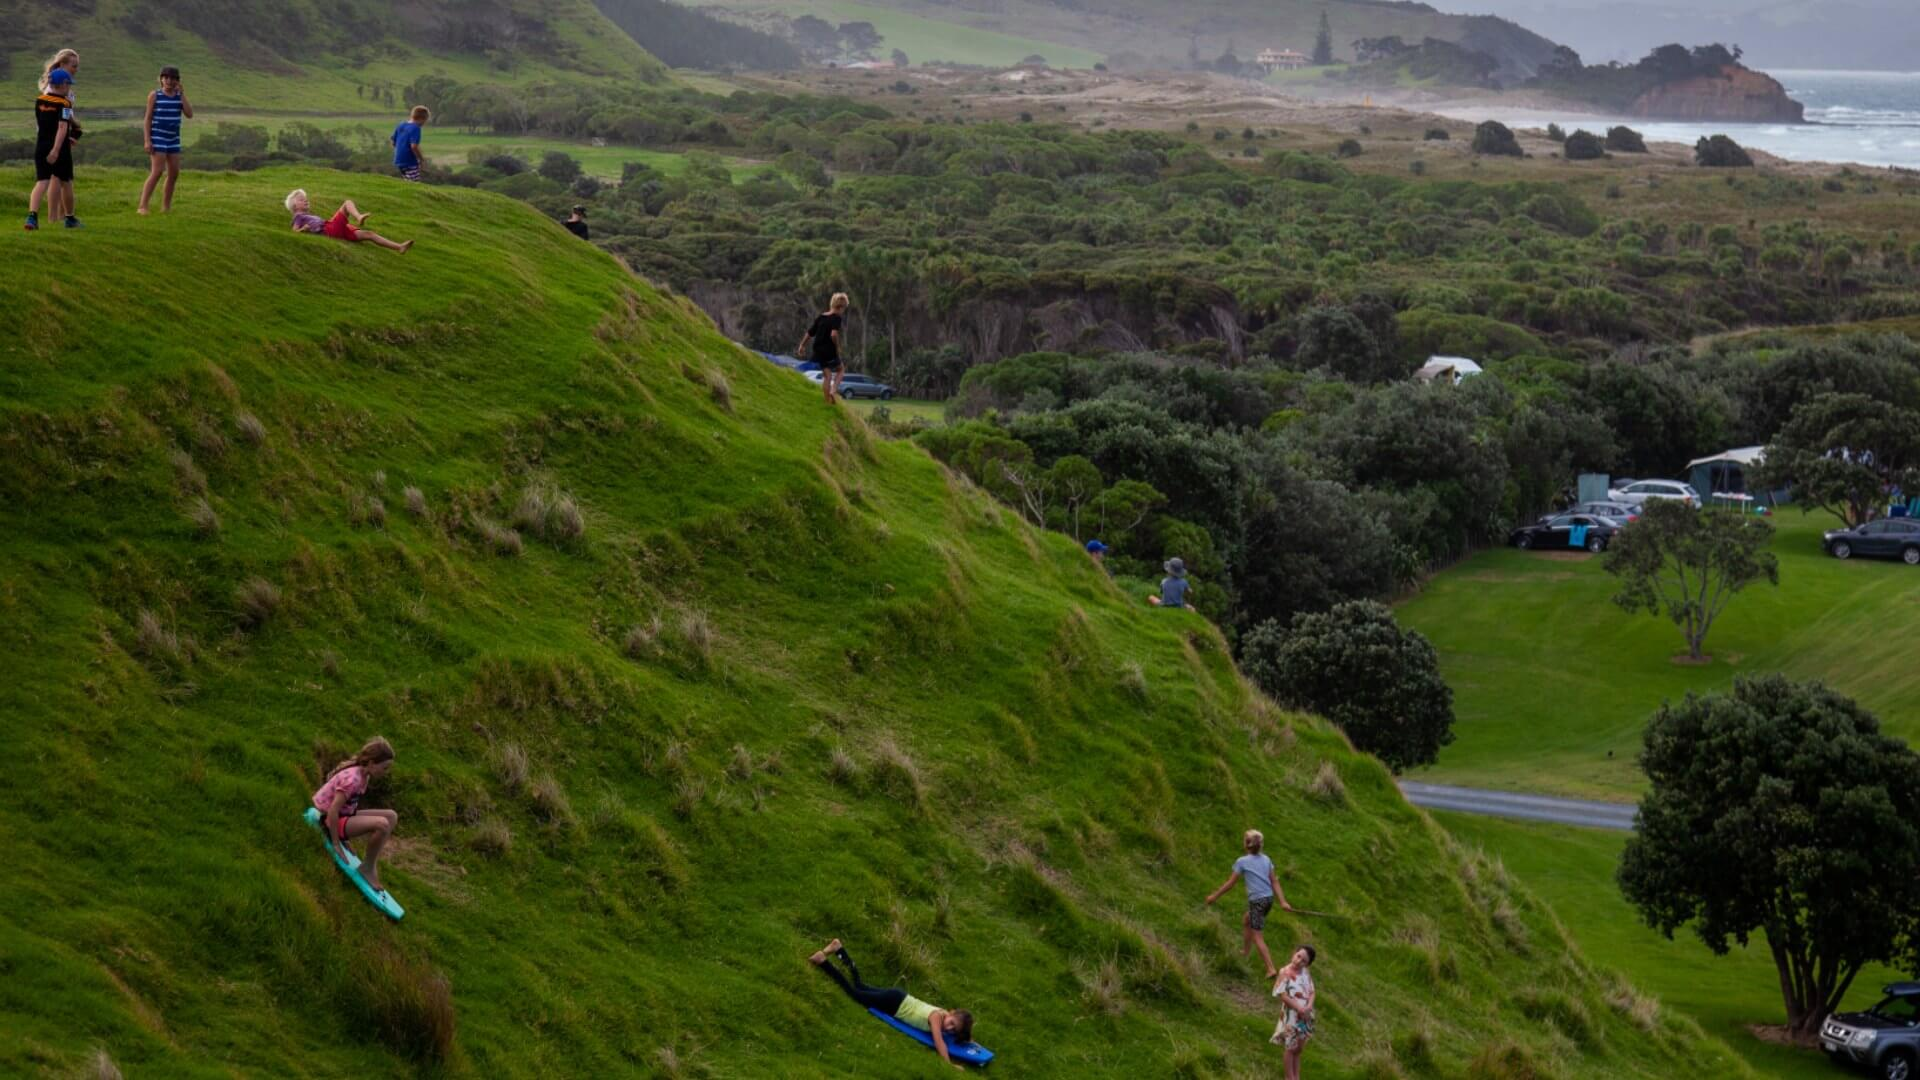 Tawharanui Walking Family Walks including with people with tiny legs